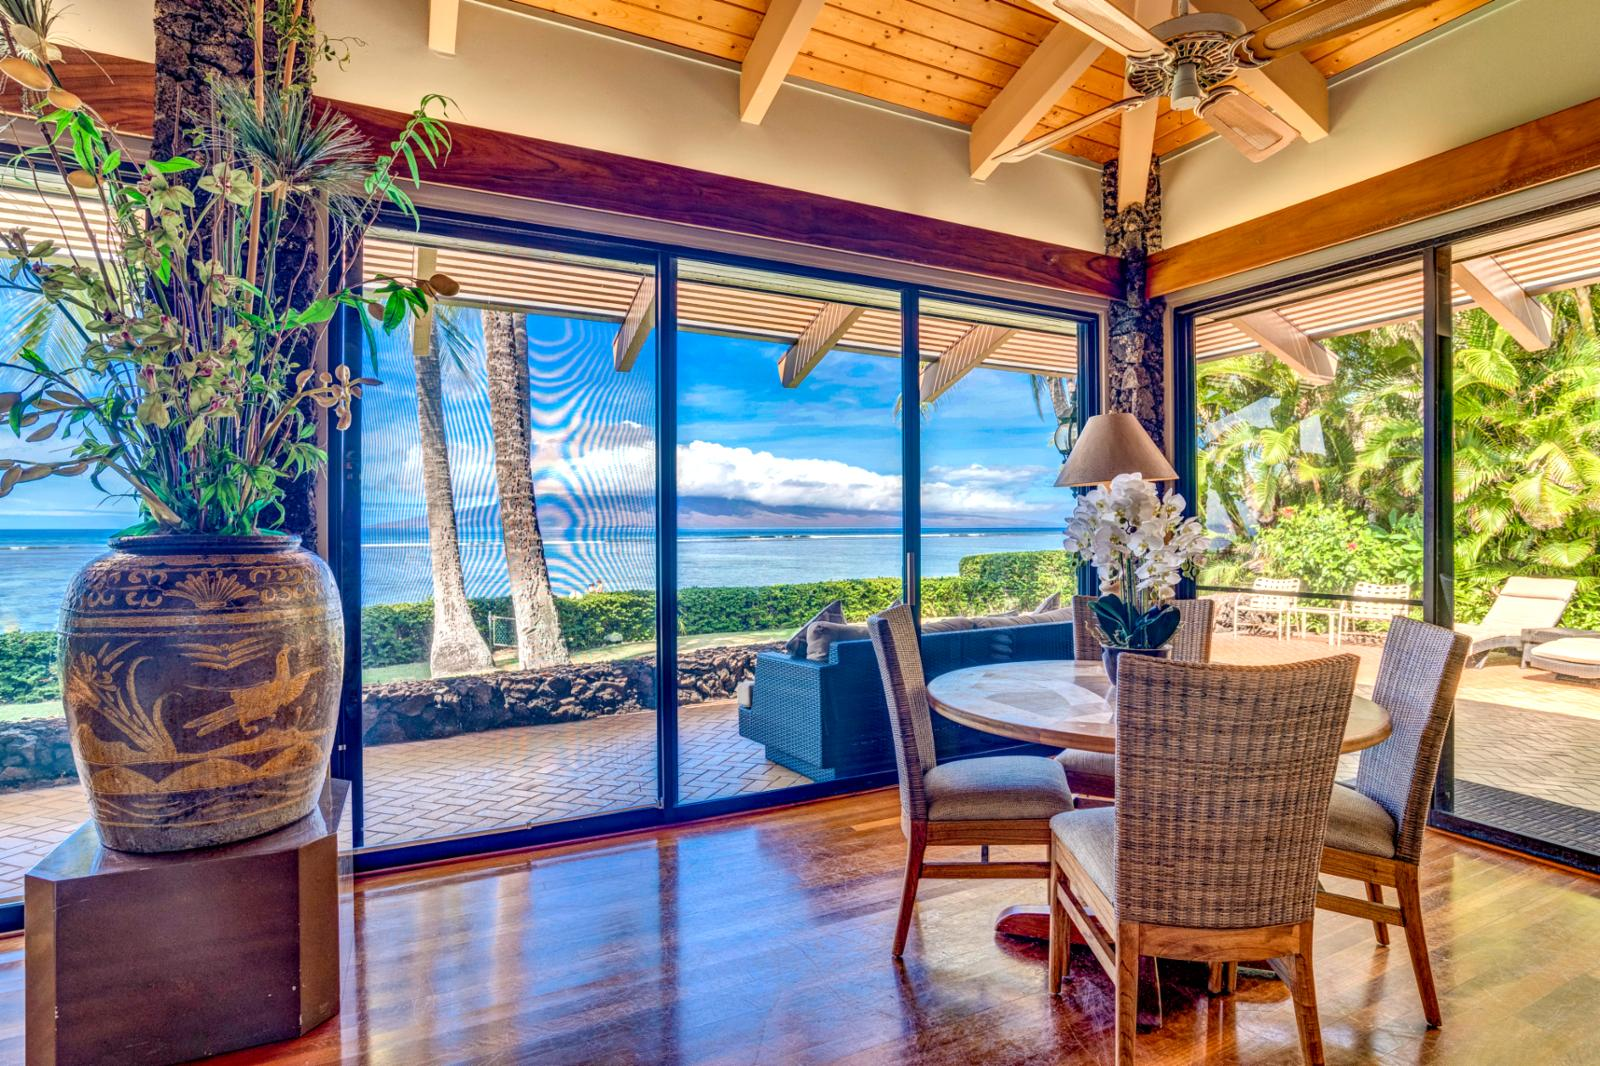 Enjoy the exclusive beach access, just steps from your private Maui home!